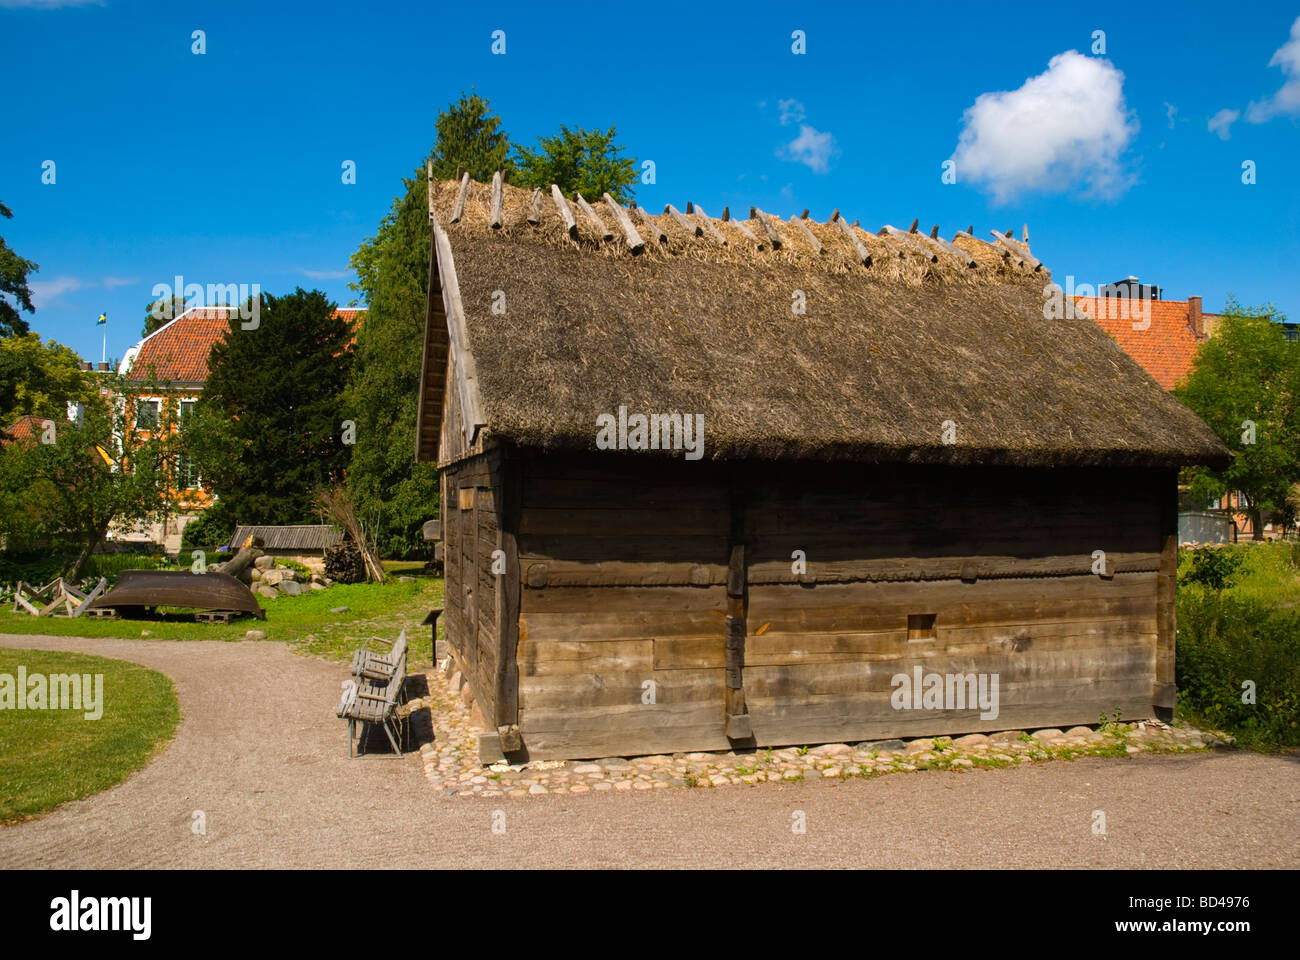 The Goathouse at Kulturen the open air museum in Lund Skåne Sweden Europe - Stock Image